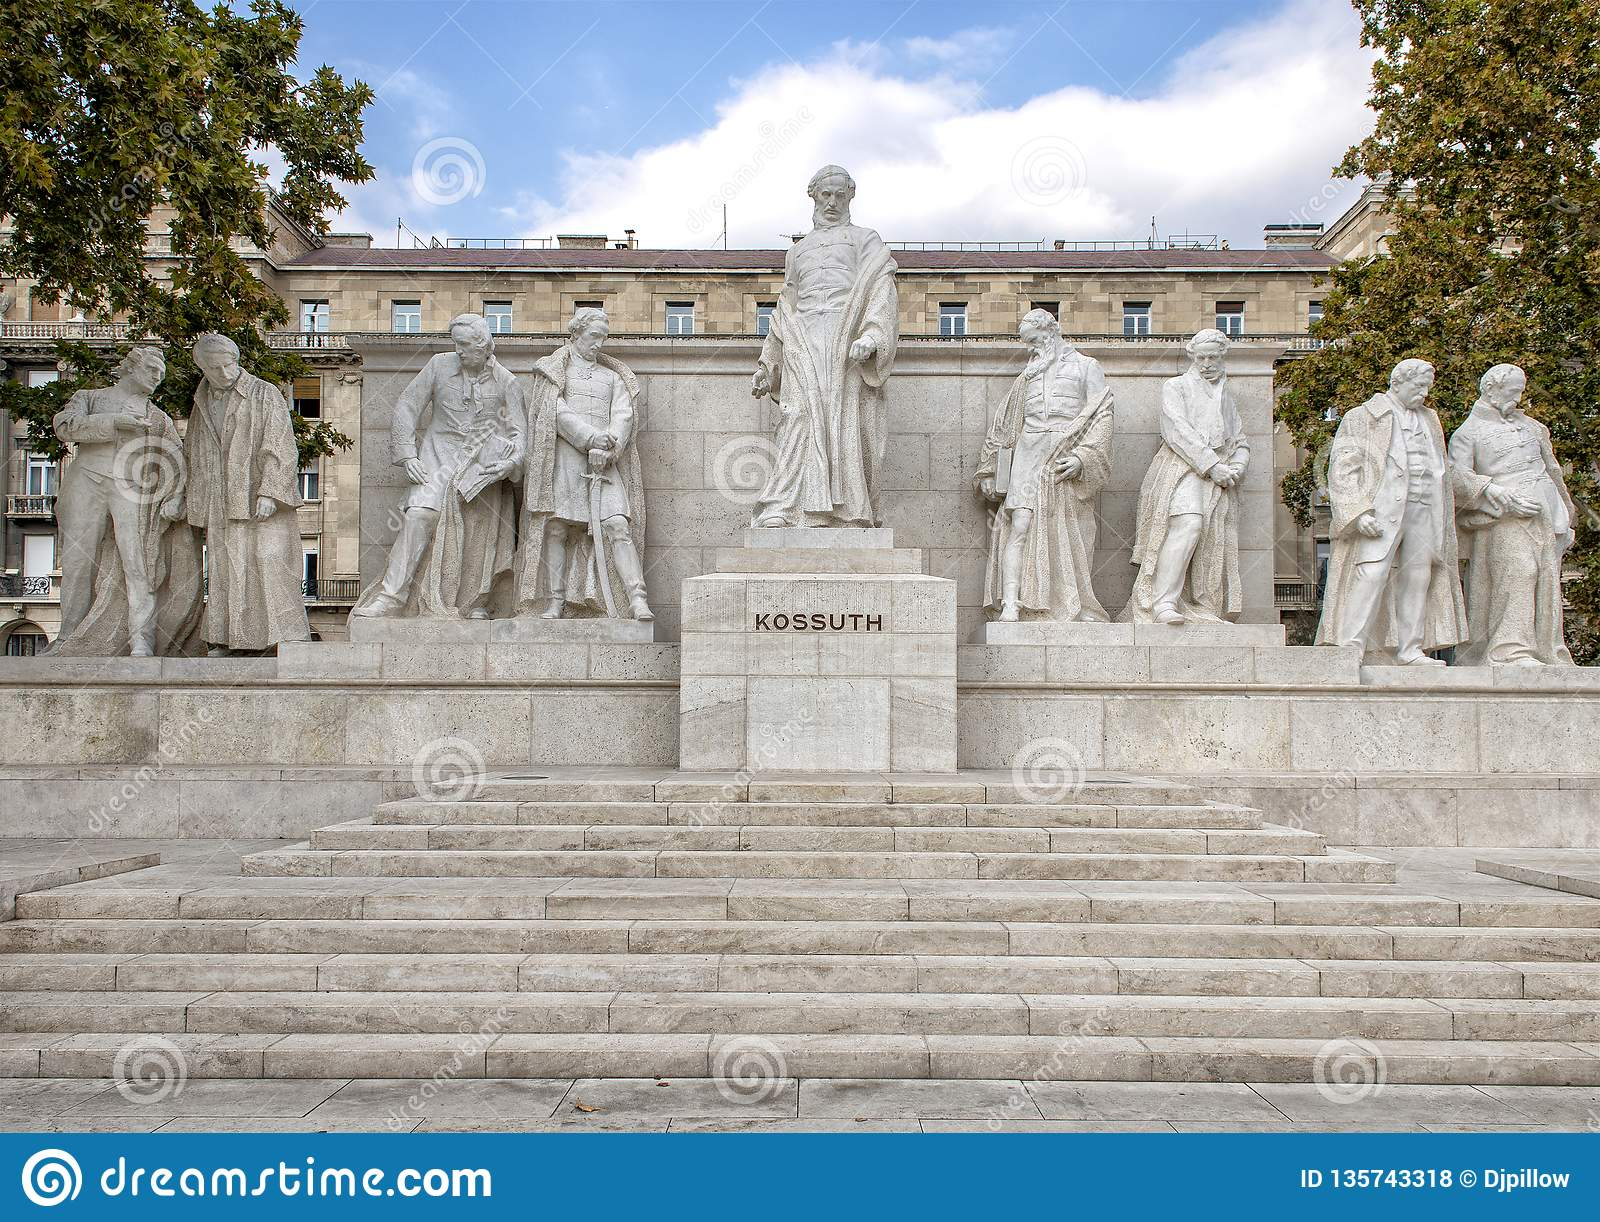 Marble complex of statues with central figure Lajos Kossuth, standing among fellow politicians, Kossuth Square, Budapest, Hungary